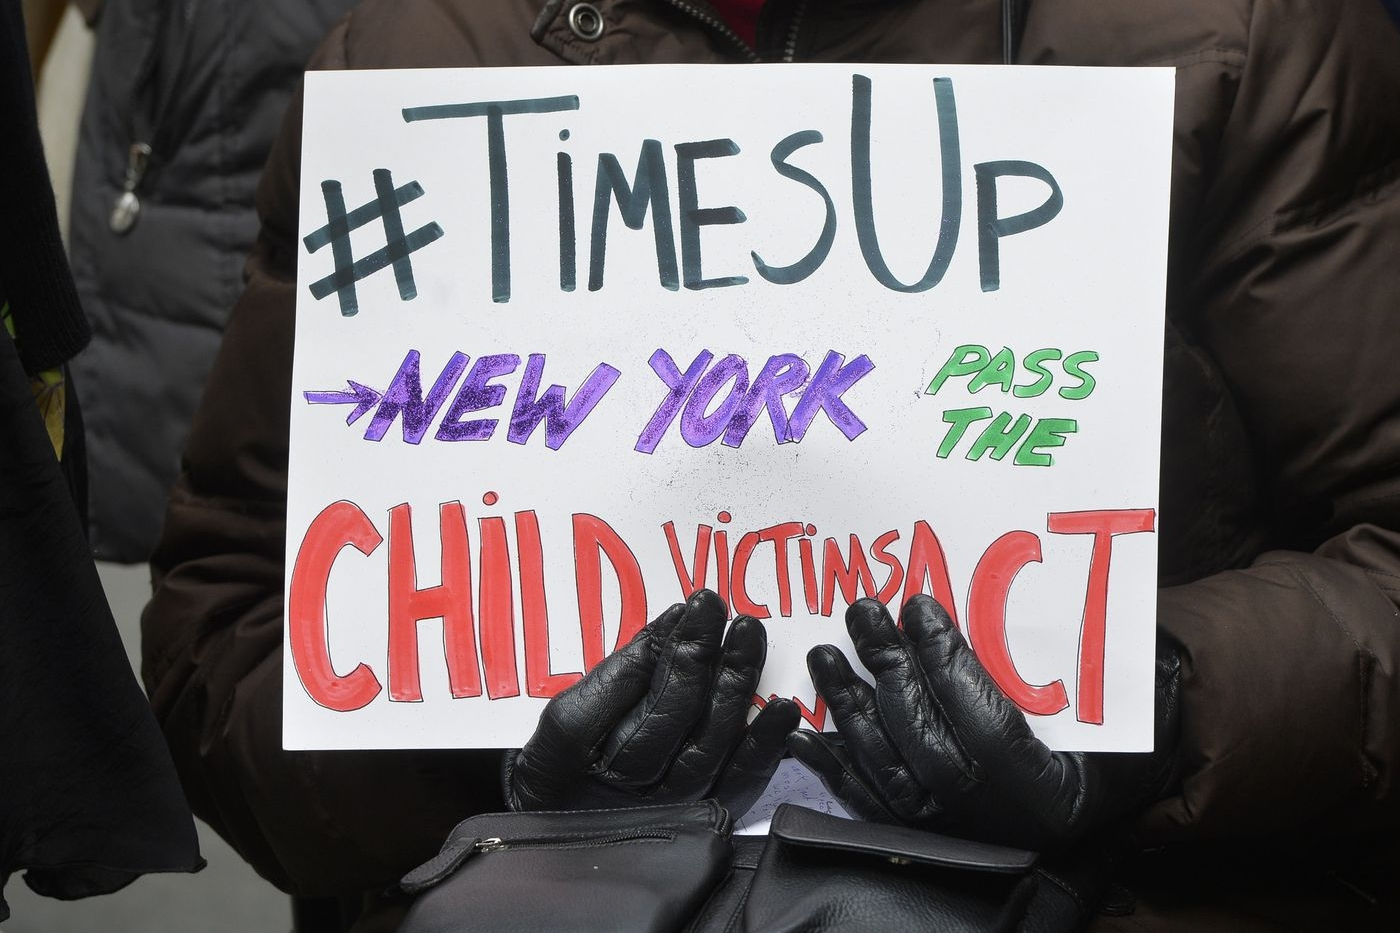 - Alternate GOP Child Victims Act bill clears committeeKenneth Lovett | June 5, 2018An alternative bill pushed by the Senate Republicans to make it easier for child sex abuse victims to seek justice as adults cleared a key committee on Tuesday.It's the first time a Senate committee has taken up the issue, though that was hardly comfort to many advocates who oppose it.